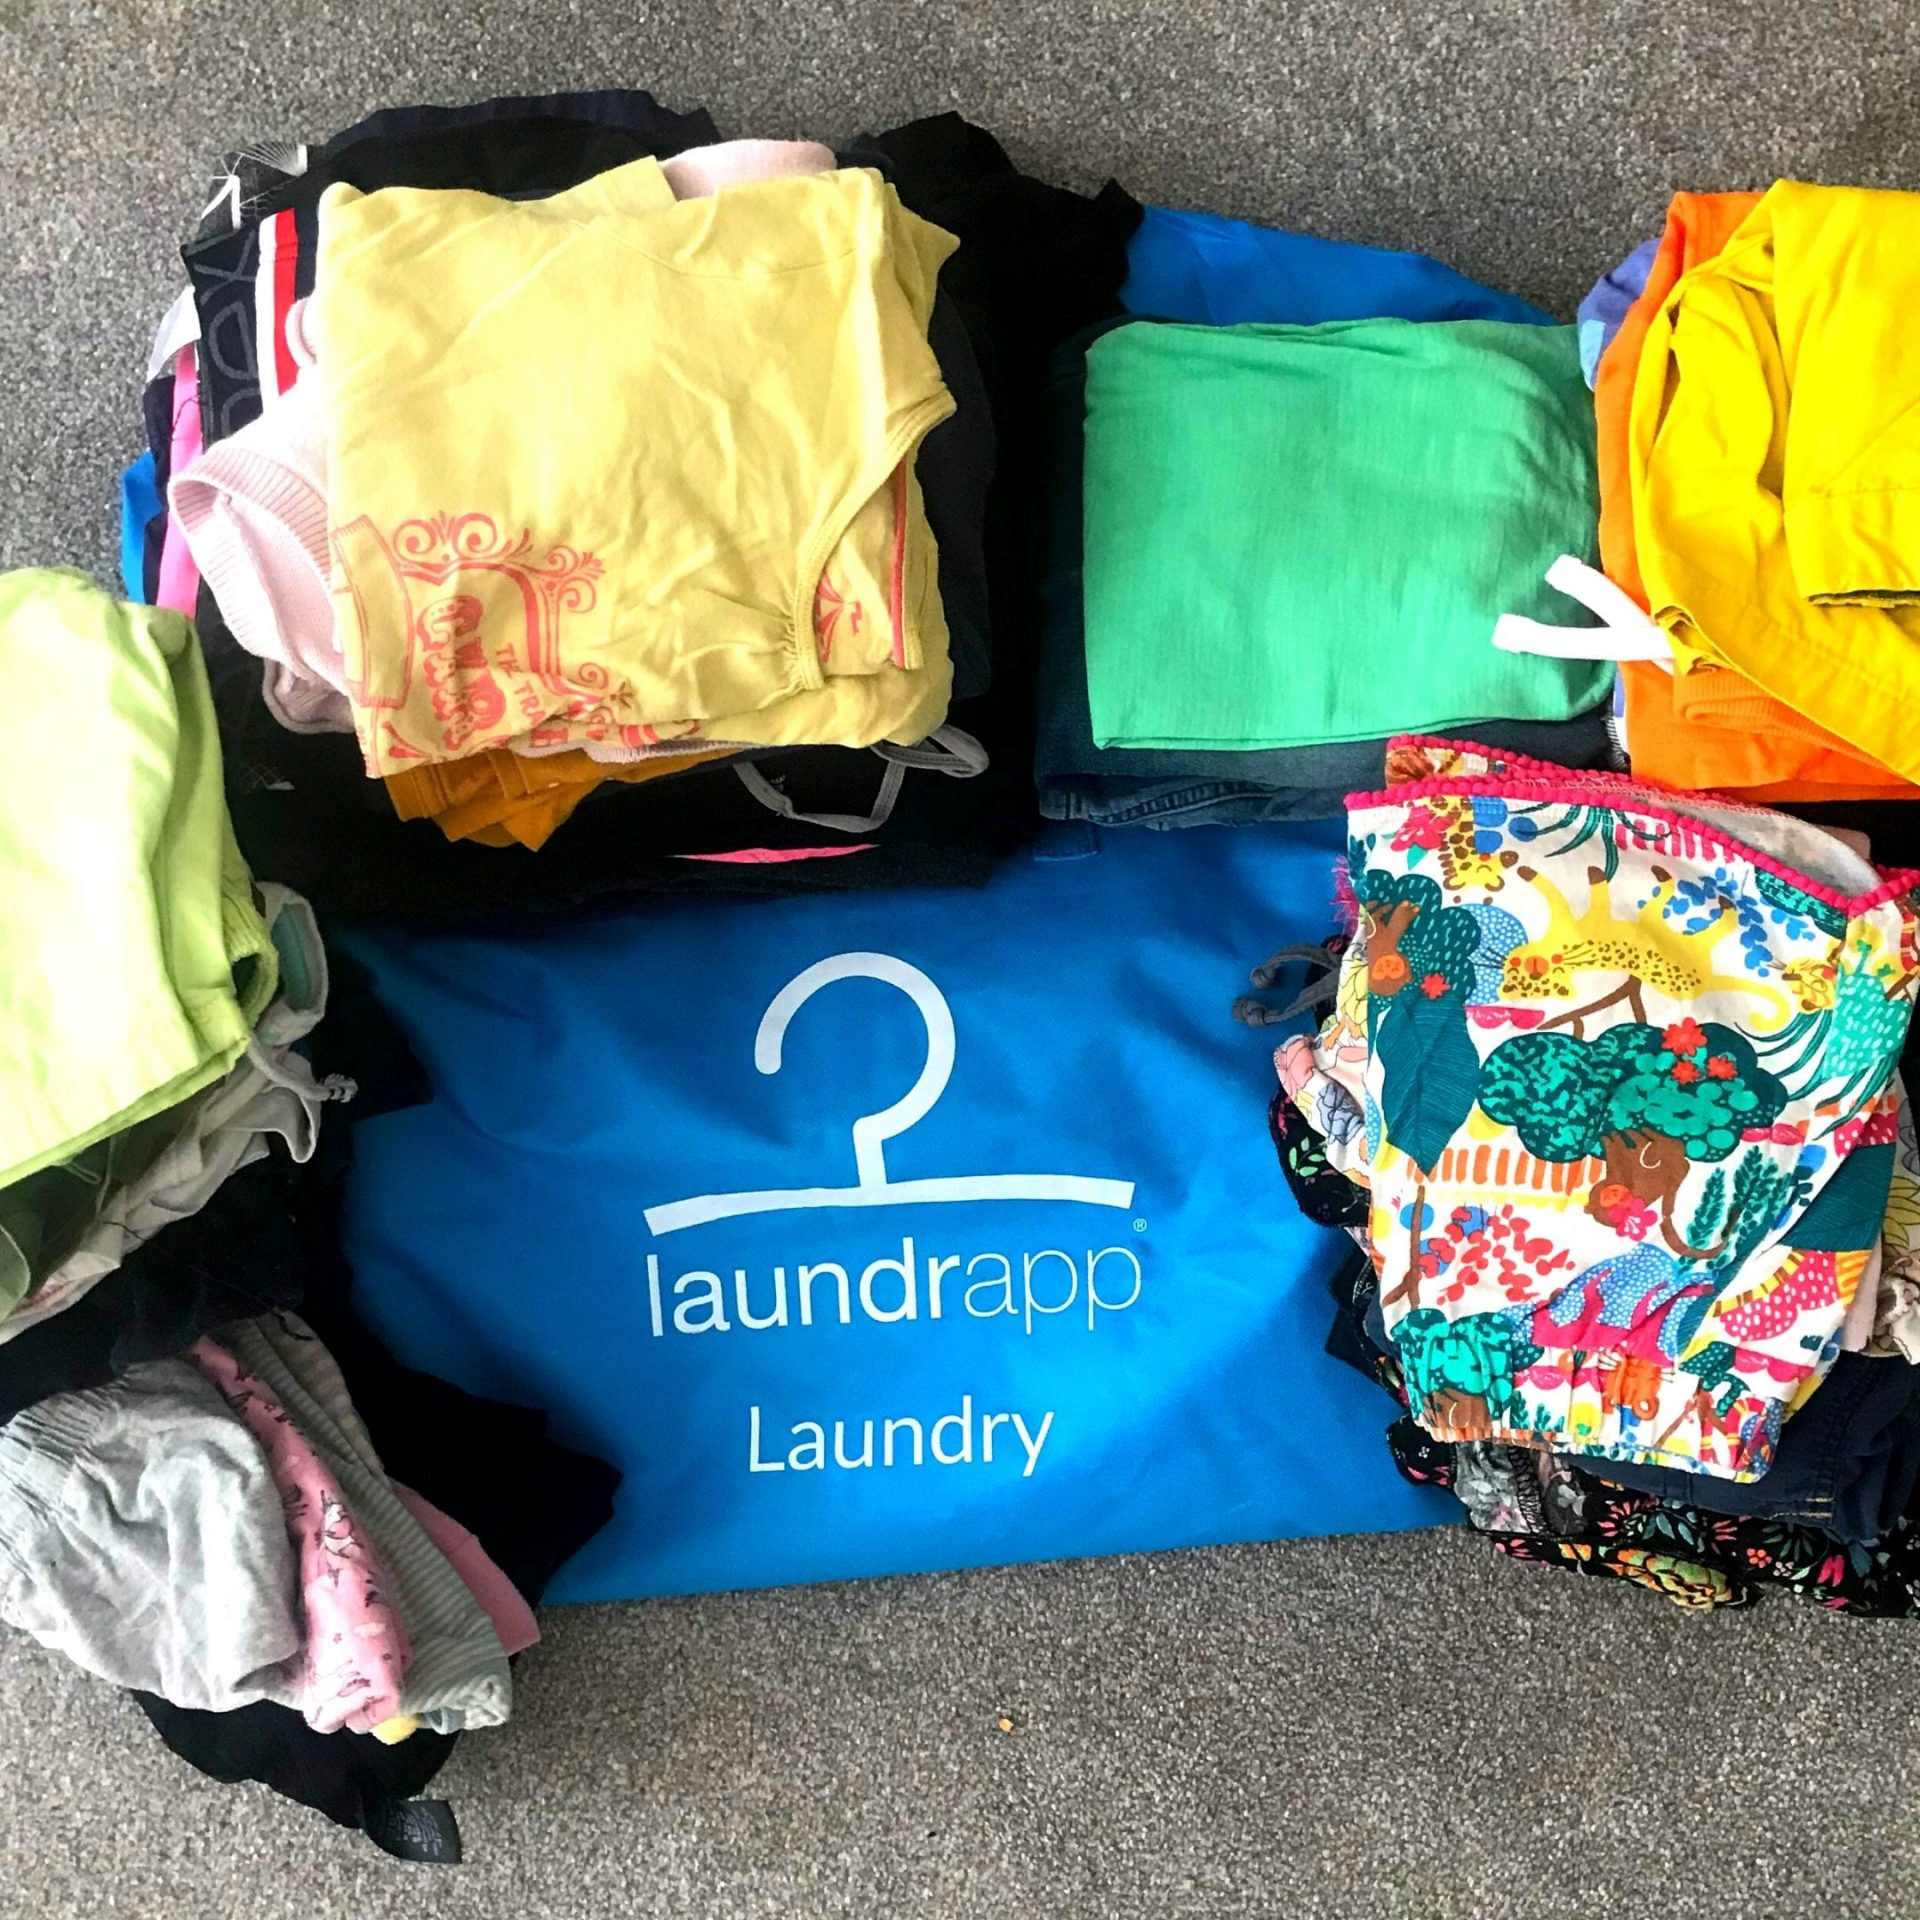 creating me time with laundry done by laundrapp